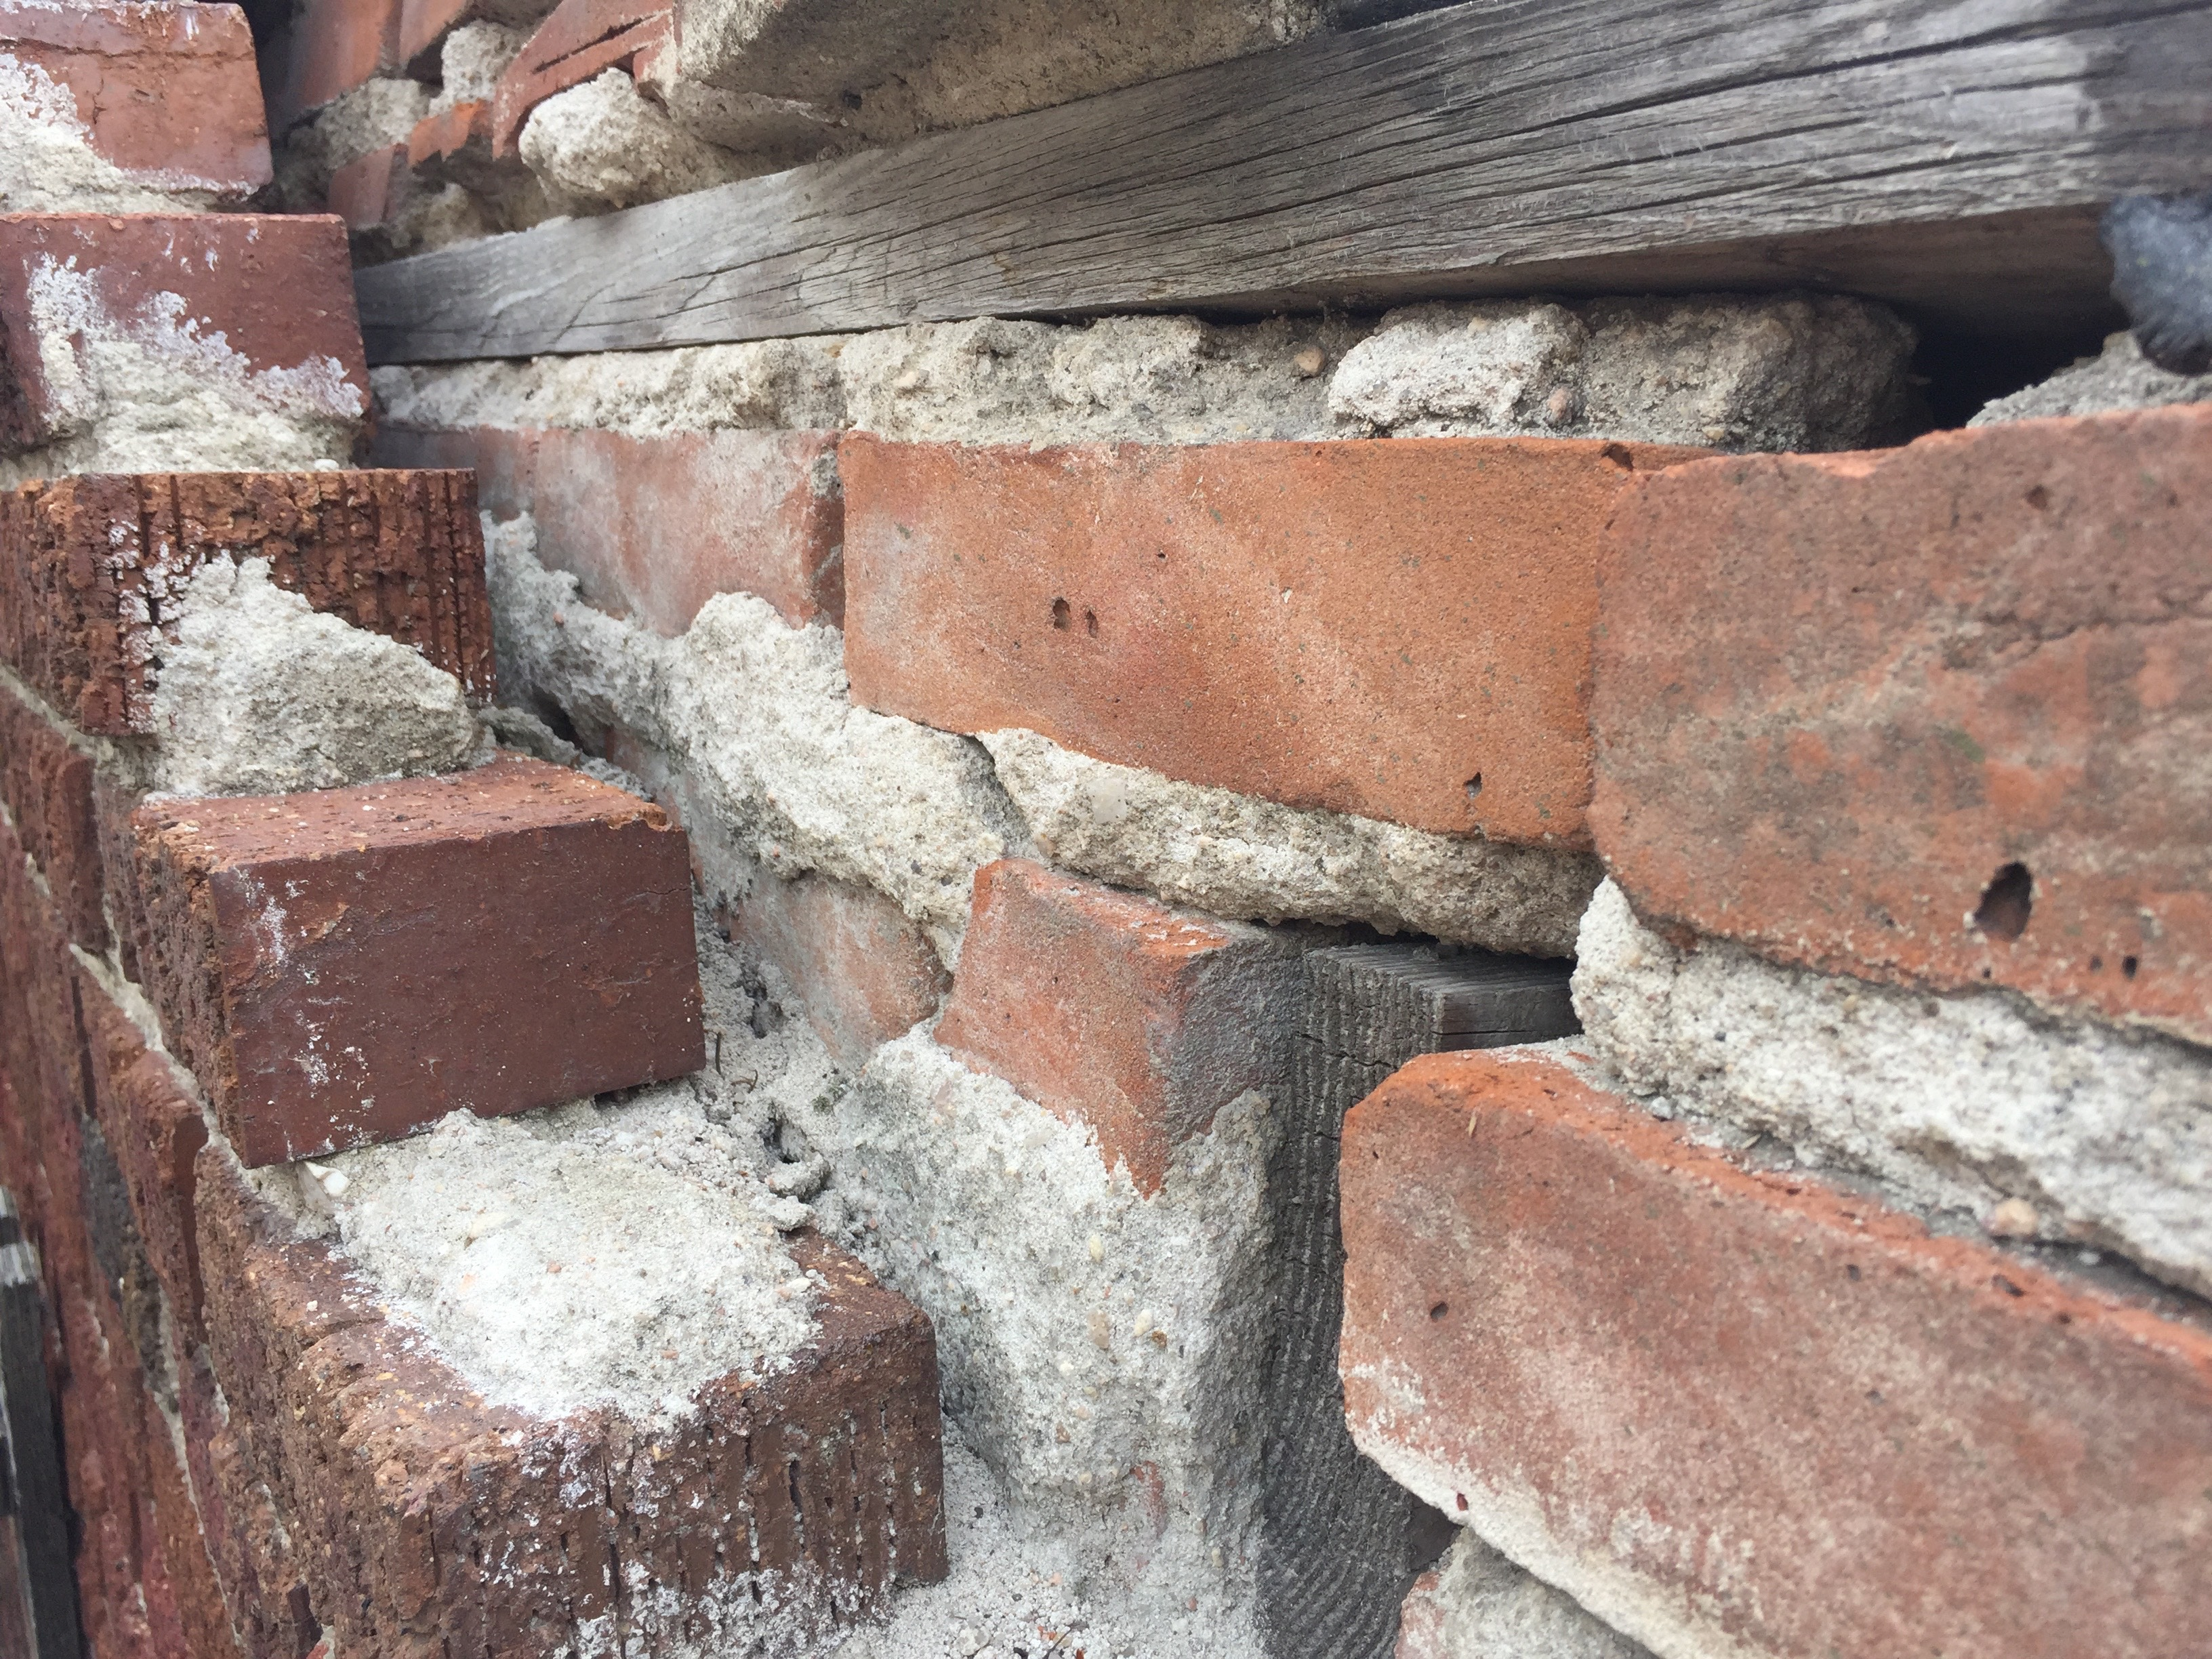 Photos Of Asbestos Containing Building Materials